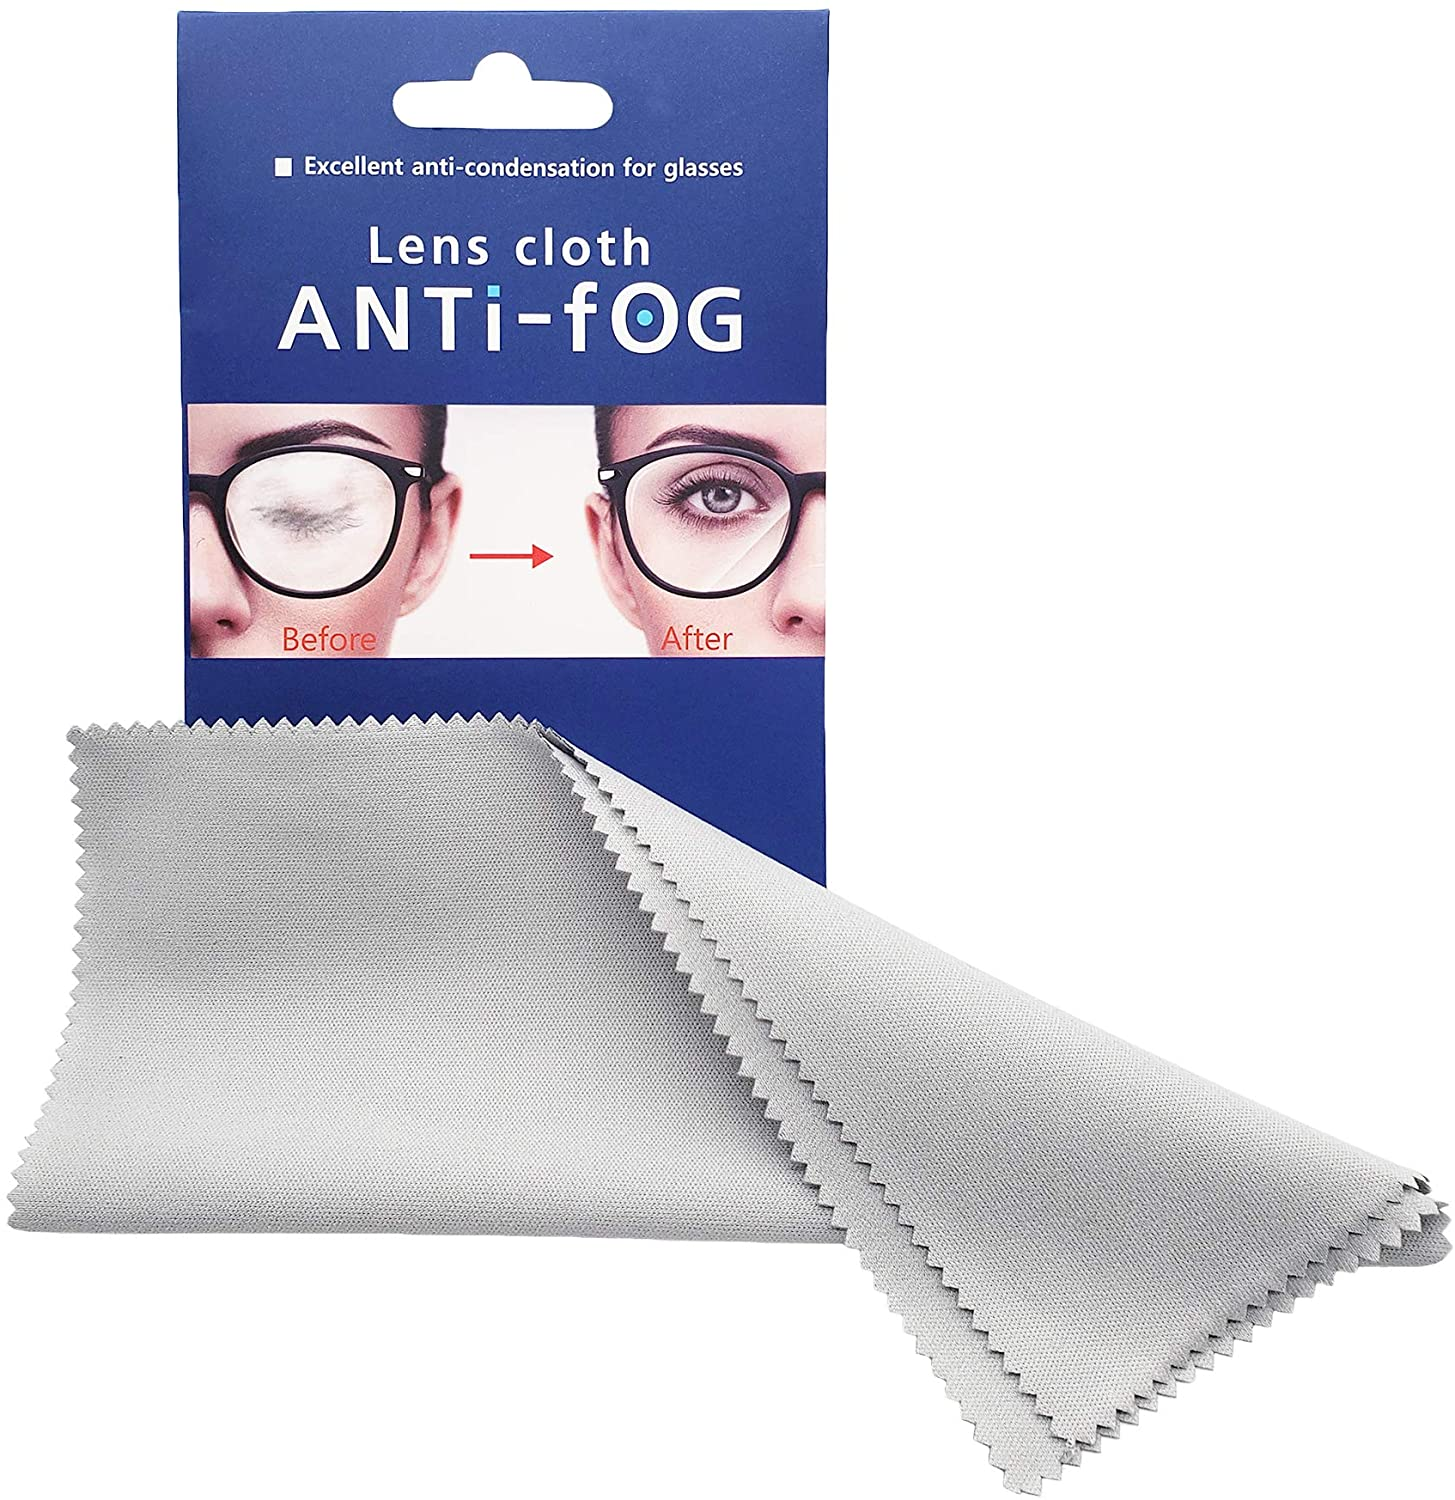 Anti-Fog Microfiber Cleaning Cloth Wipes for Eyeglasses, Sunglasses, Goggles, Helmets, Camera Lens, Mirrors and Other Delicate Surfaces